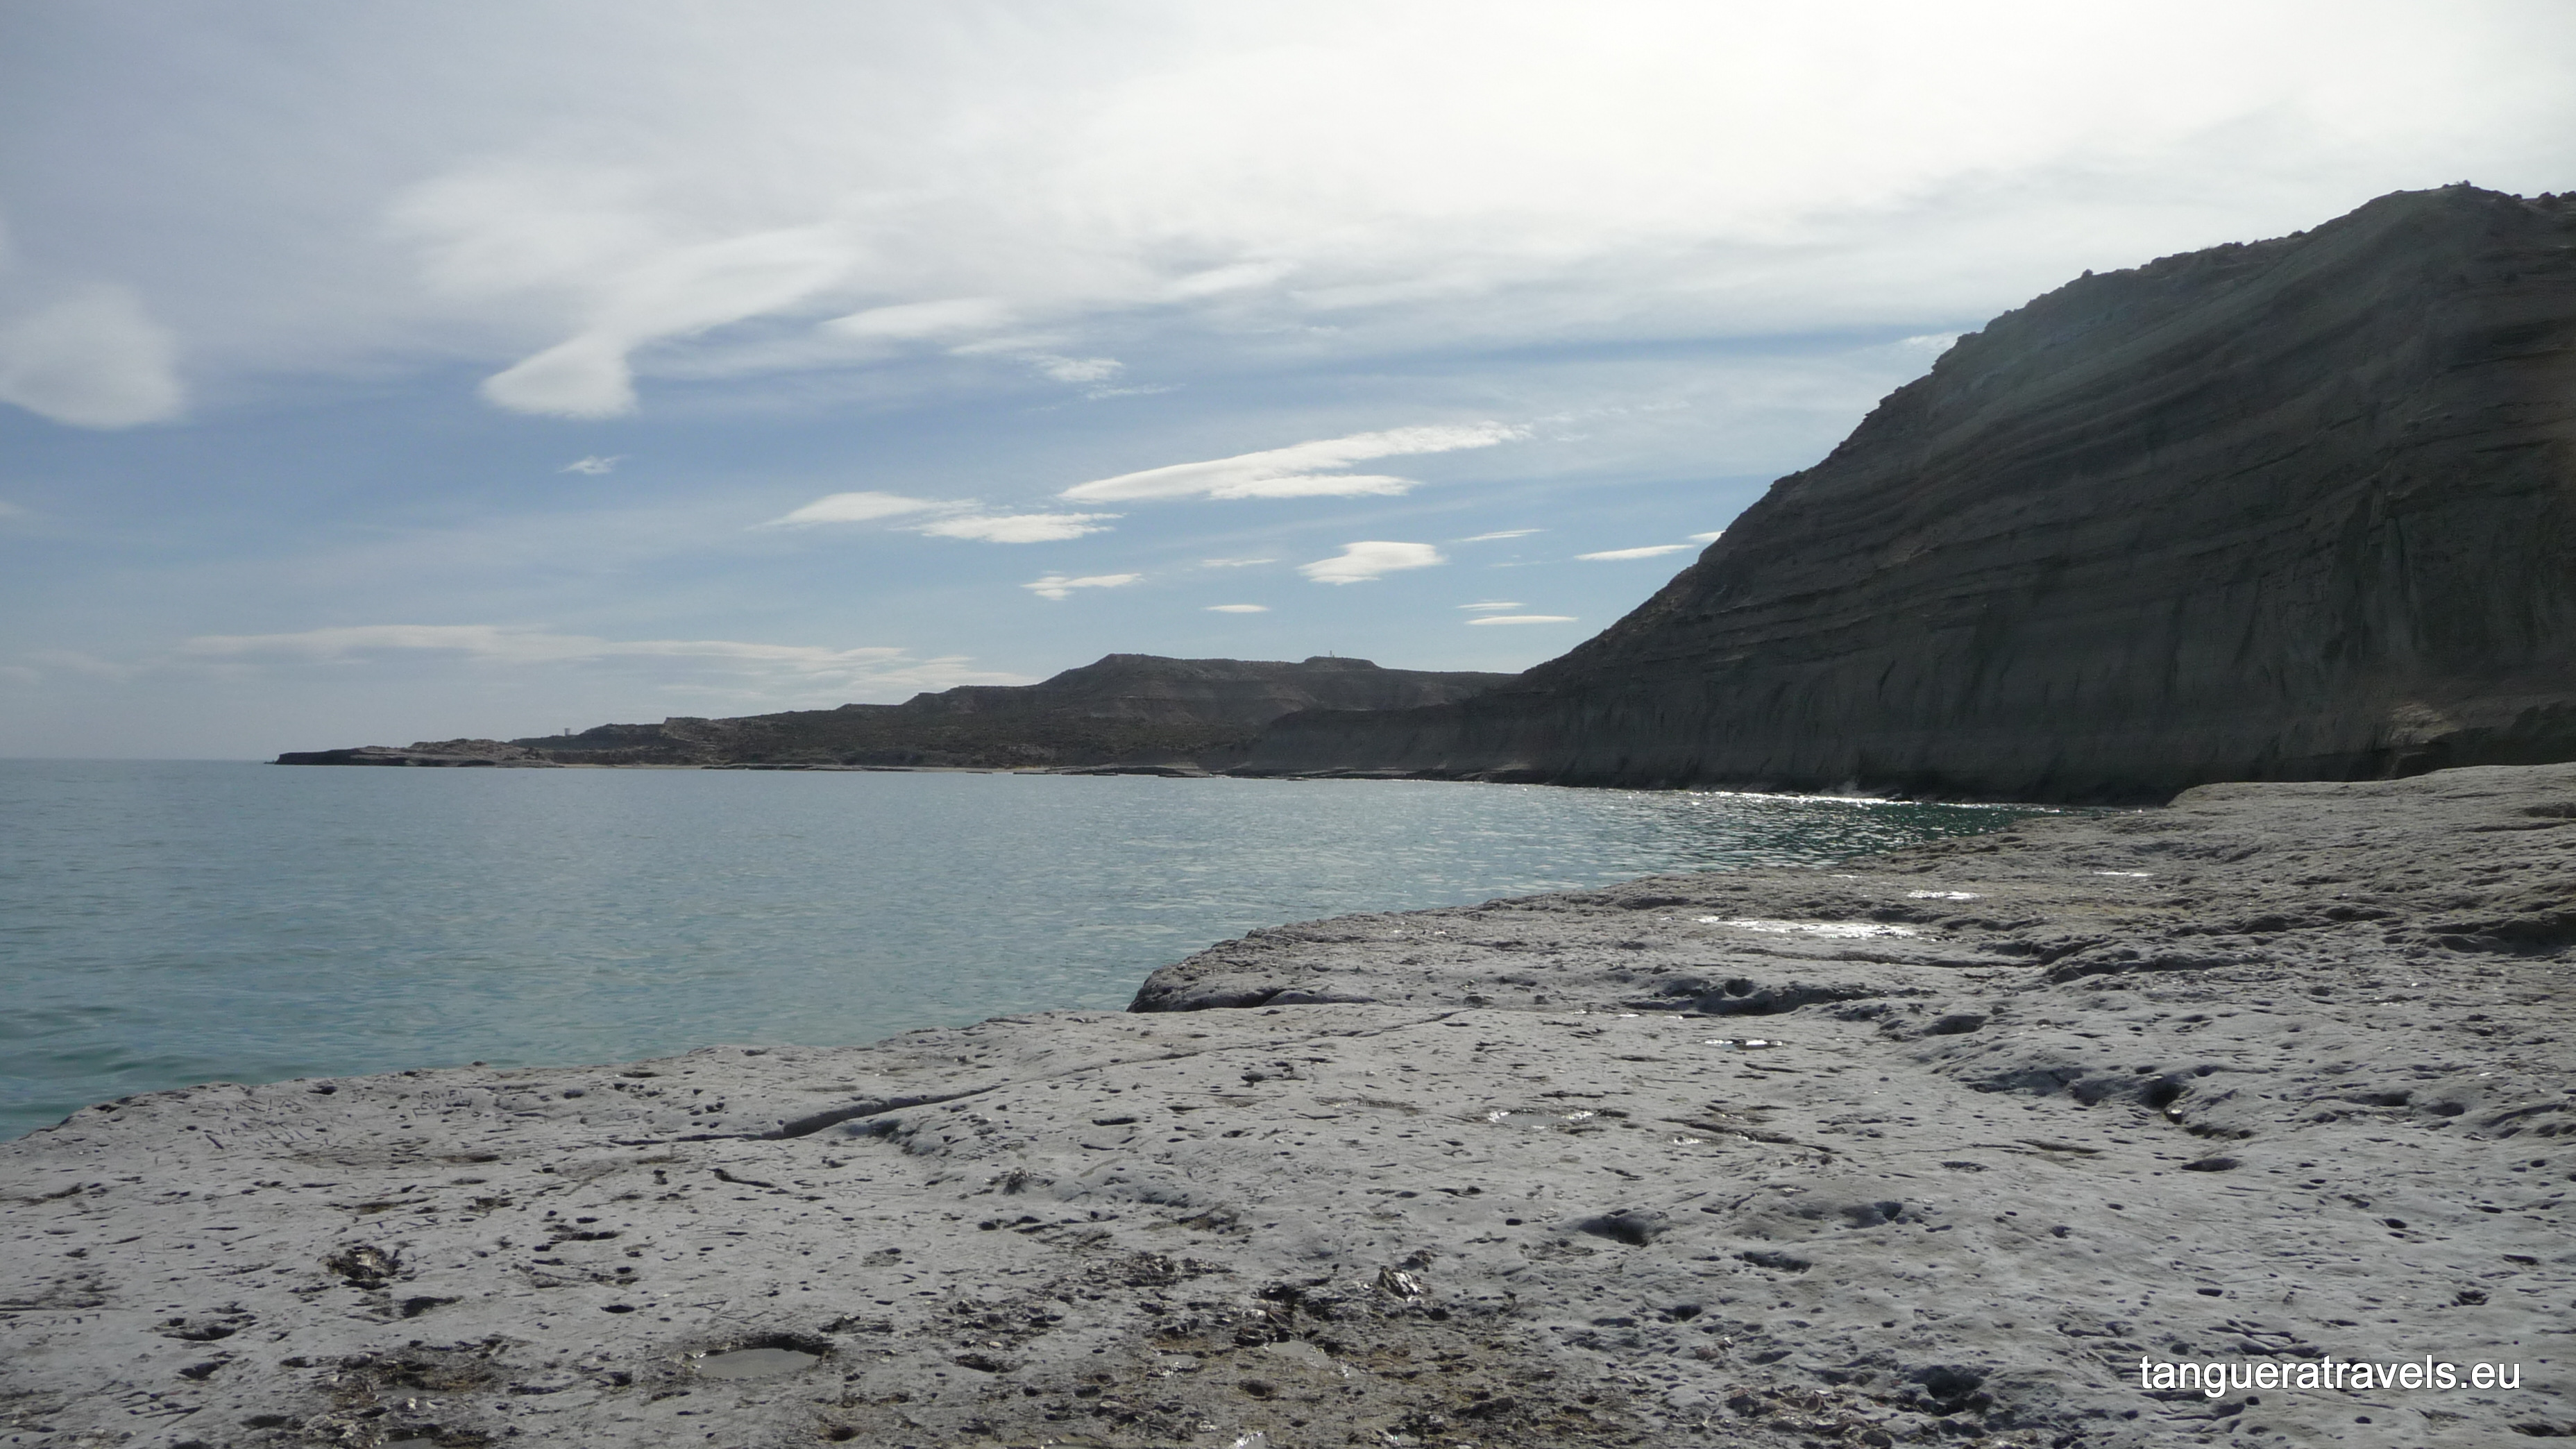 view from the shore at Puerto Piramides